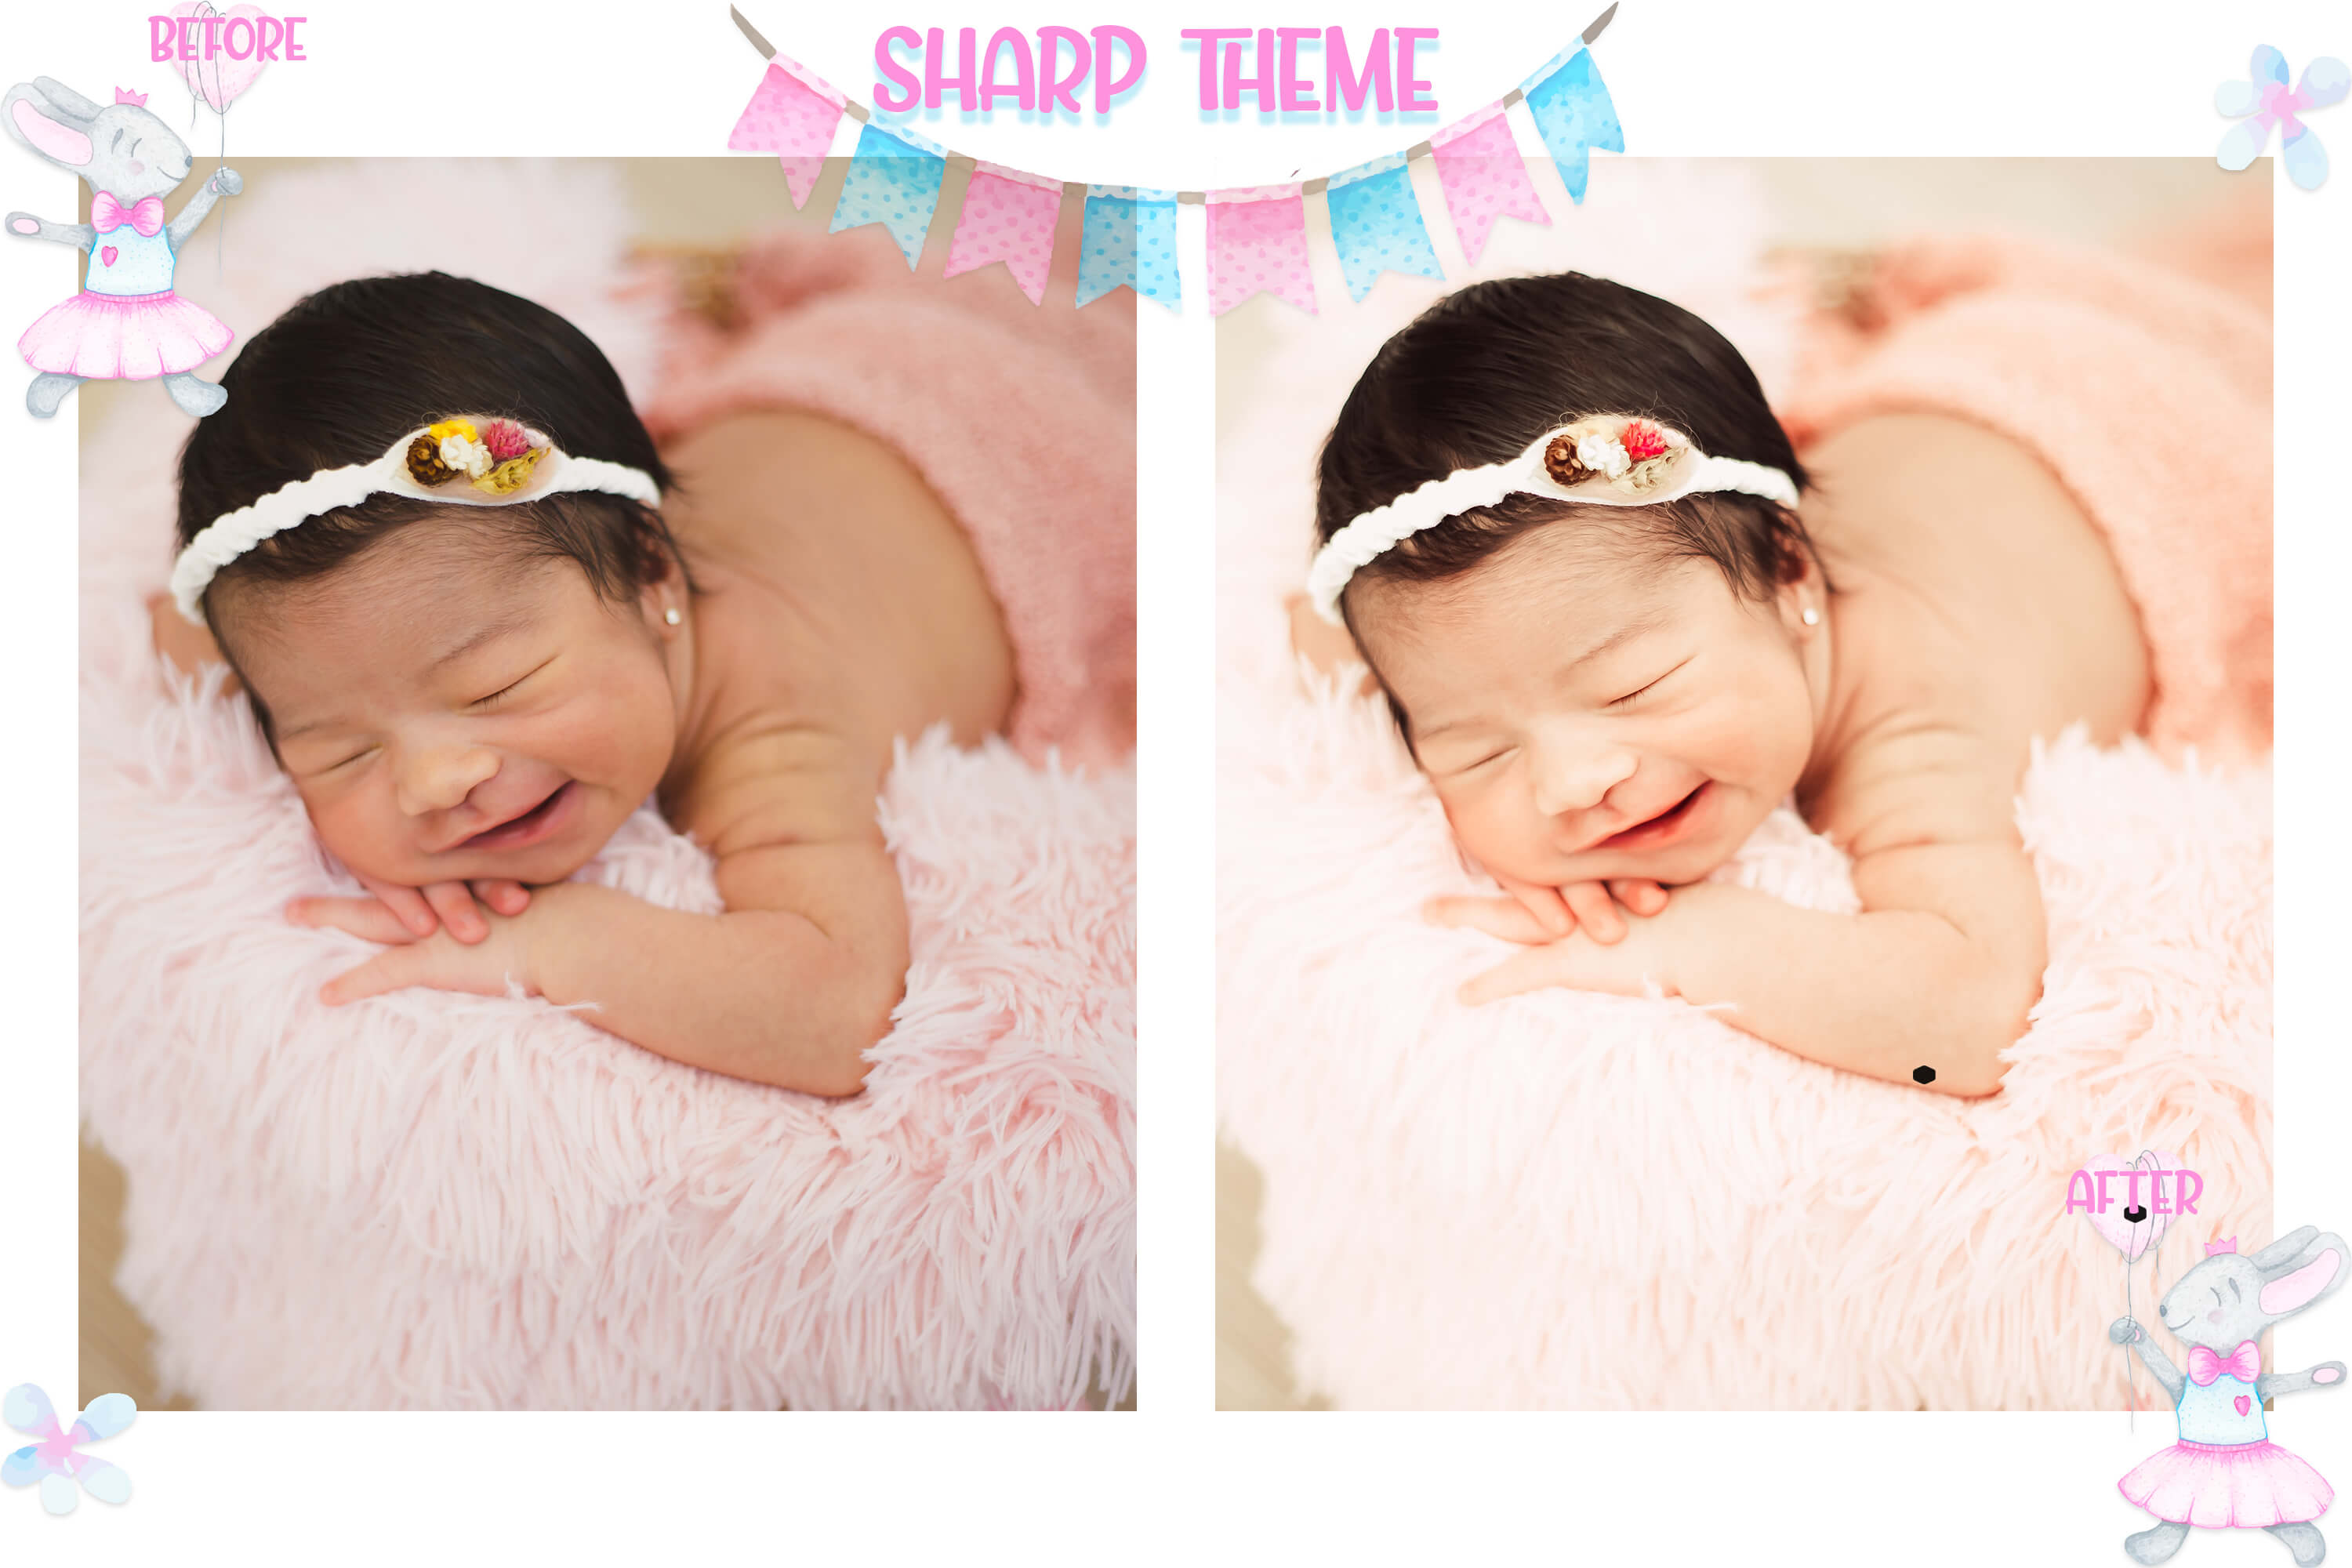 10 Newborn Mobile & Desktop Lightroom Presets, baby skin LR example image 9